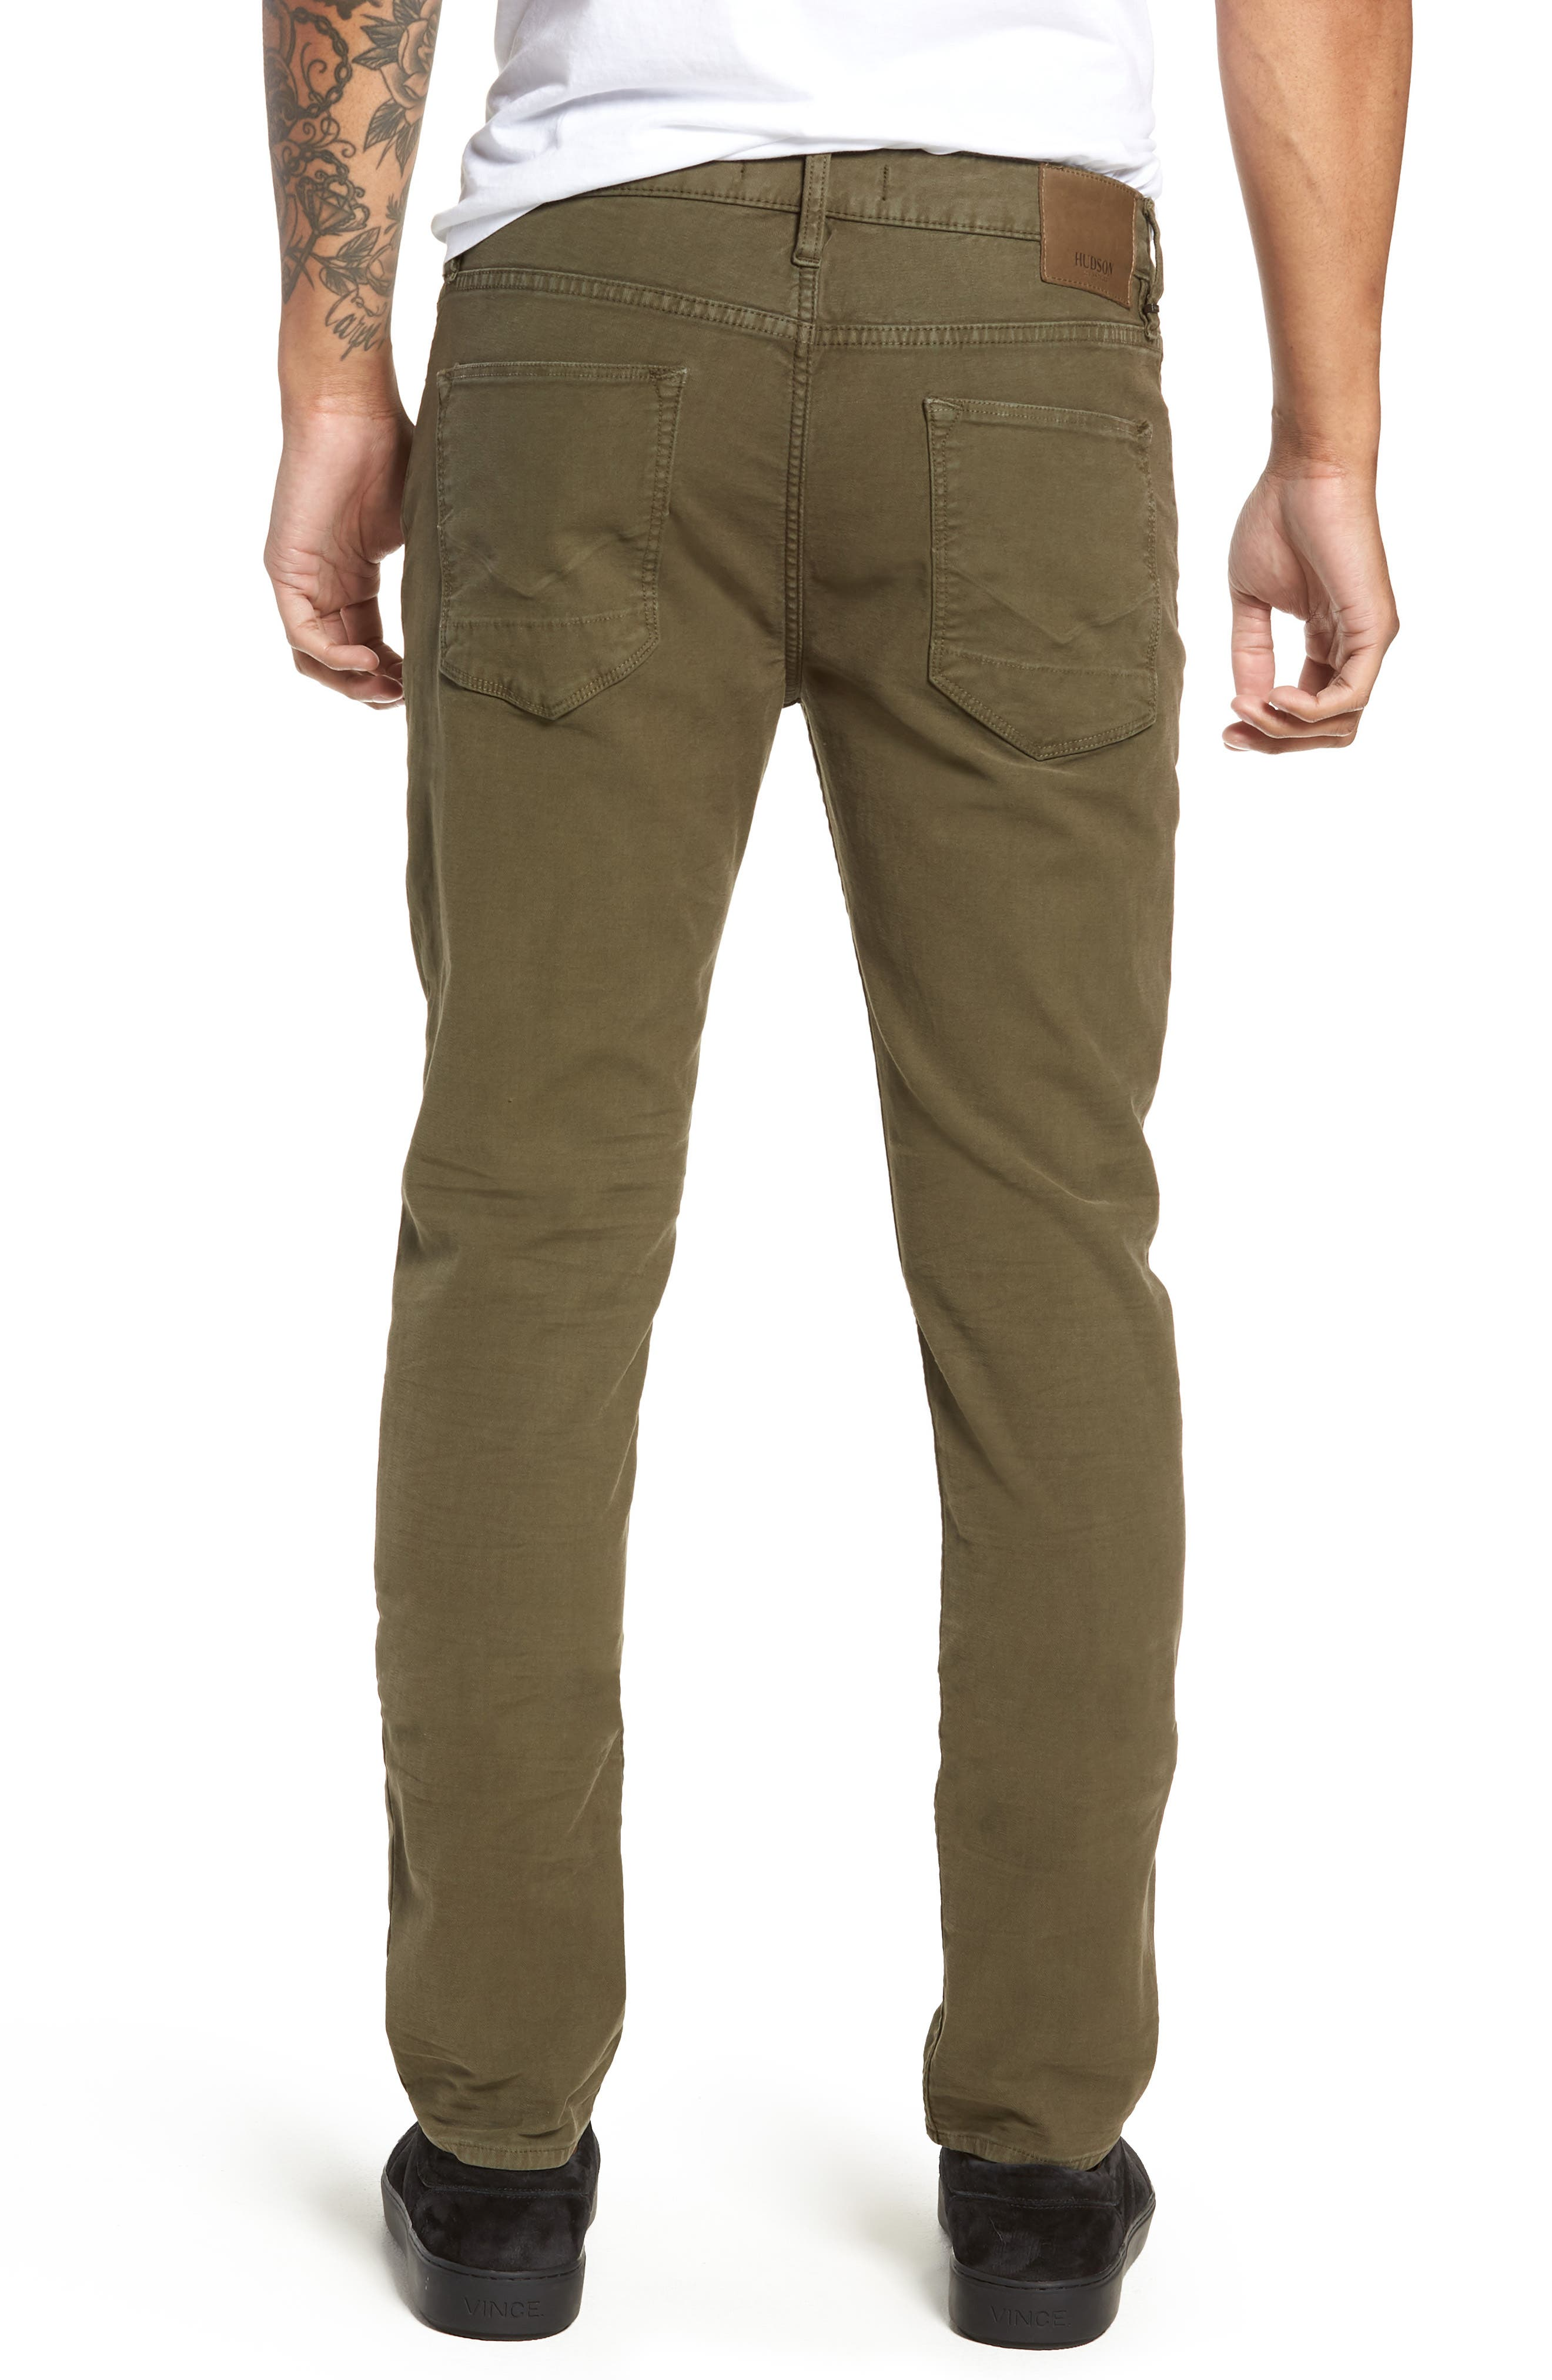 Axl Skinny Fit Jeans,                             Alternate thumbnail 2, color,                             FATIGUE GREEN